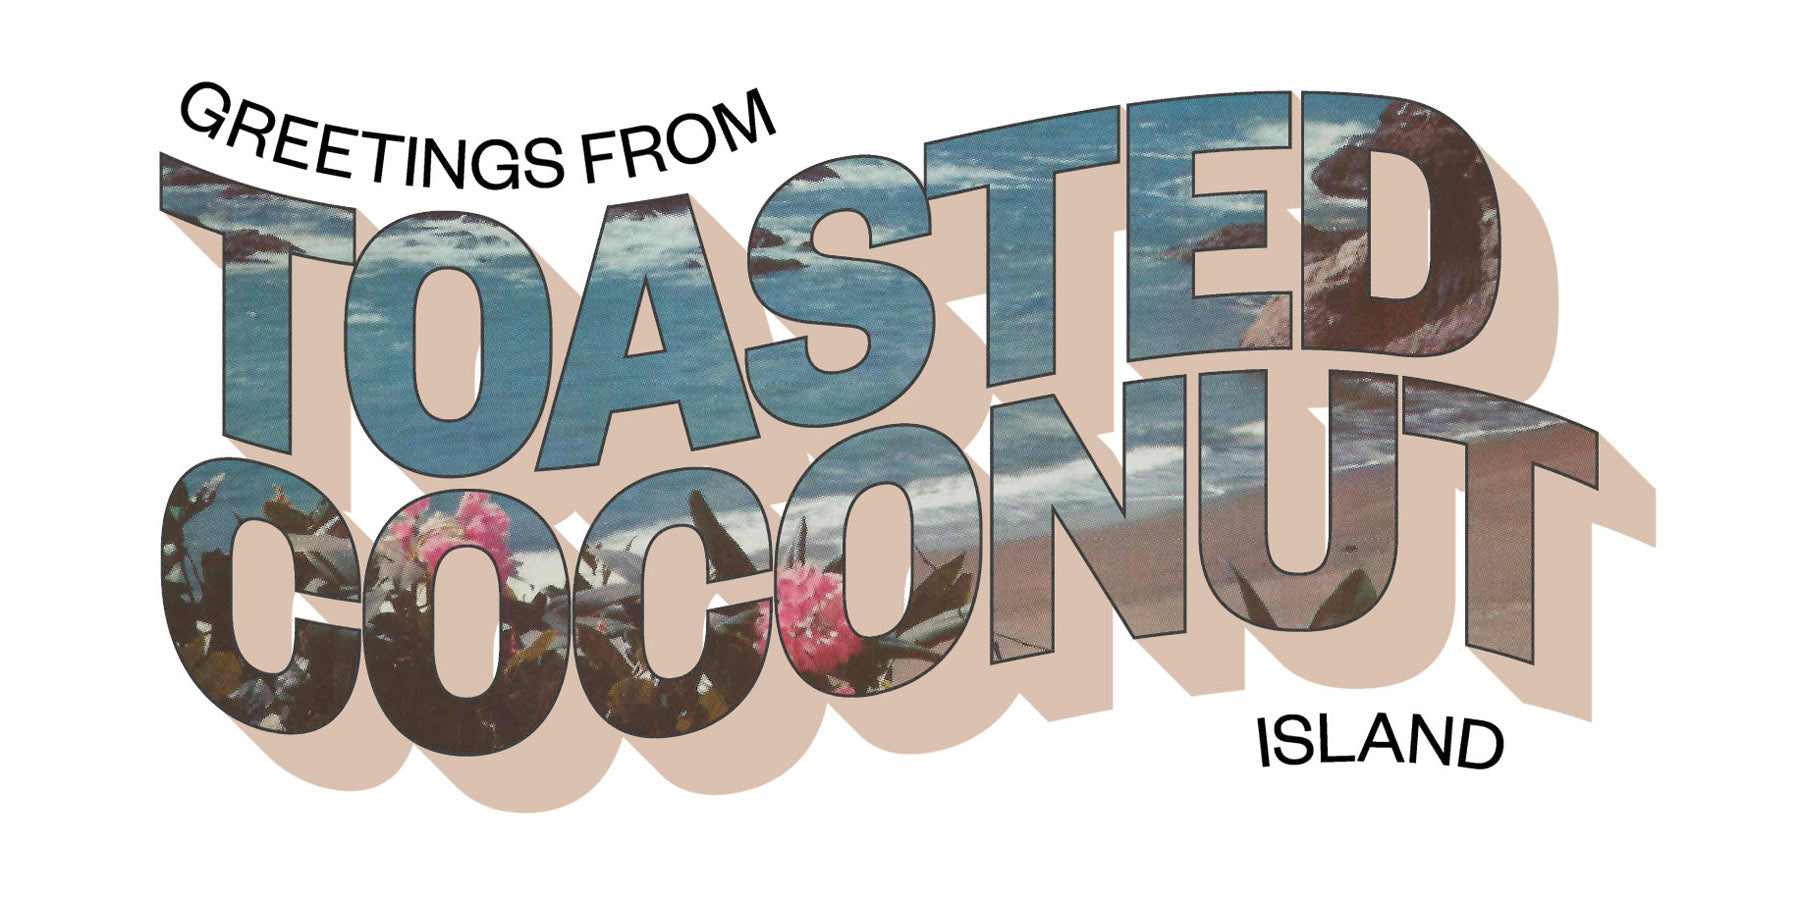 Greetings from Toasted Coconut Island